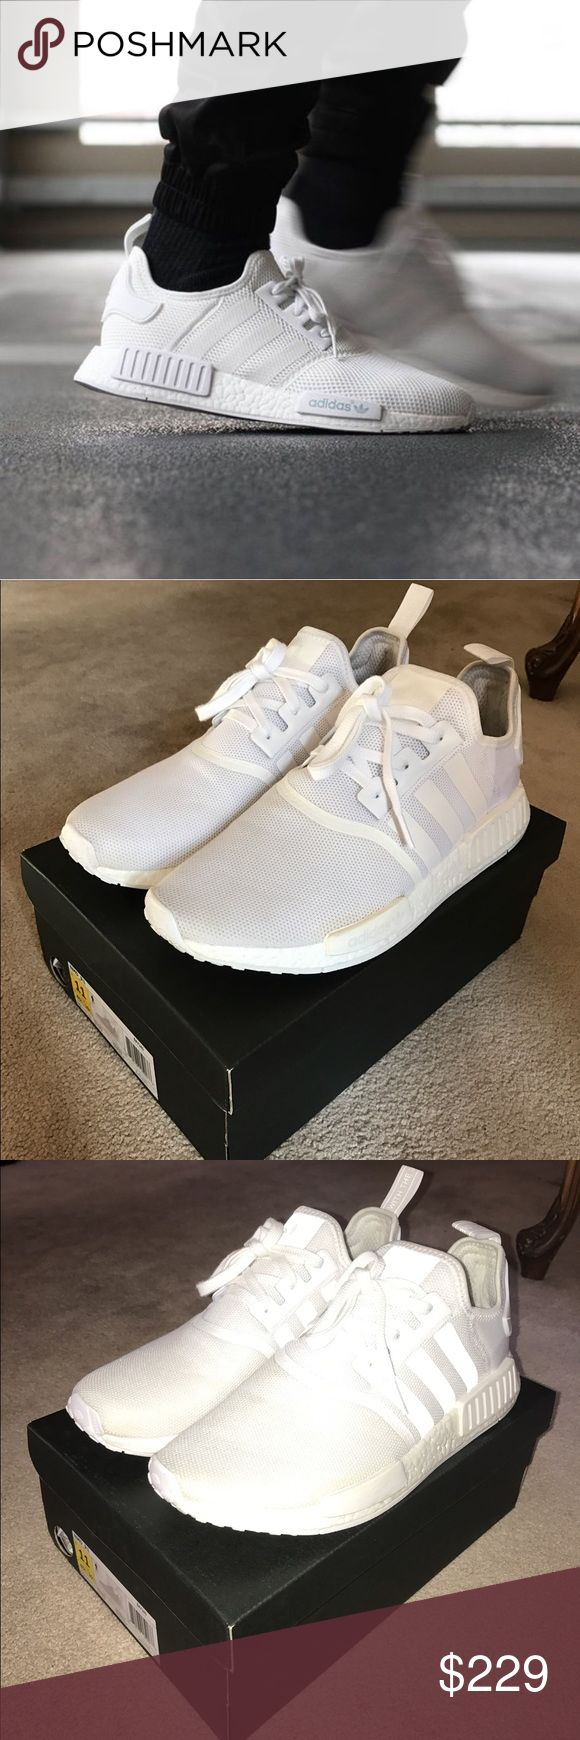 Adidas Triple White NMD 2017 Cared for and worn by sneaker head, carefully and thoughtfully worn, worn three times. Adidas Shoes Sneakers